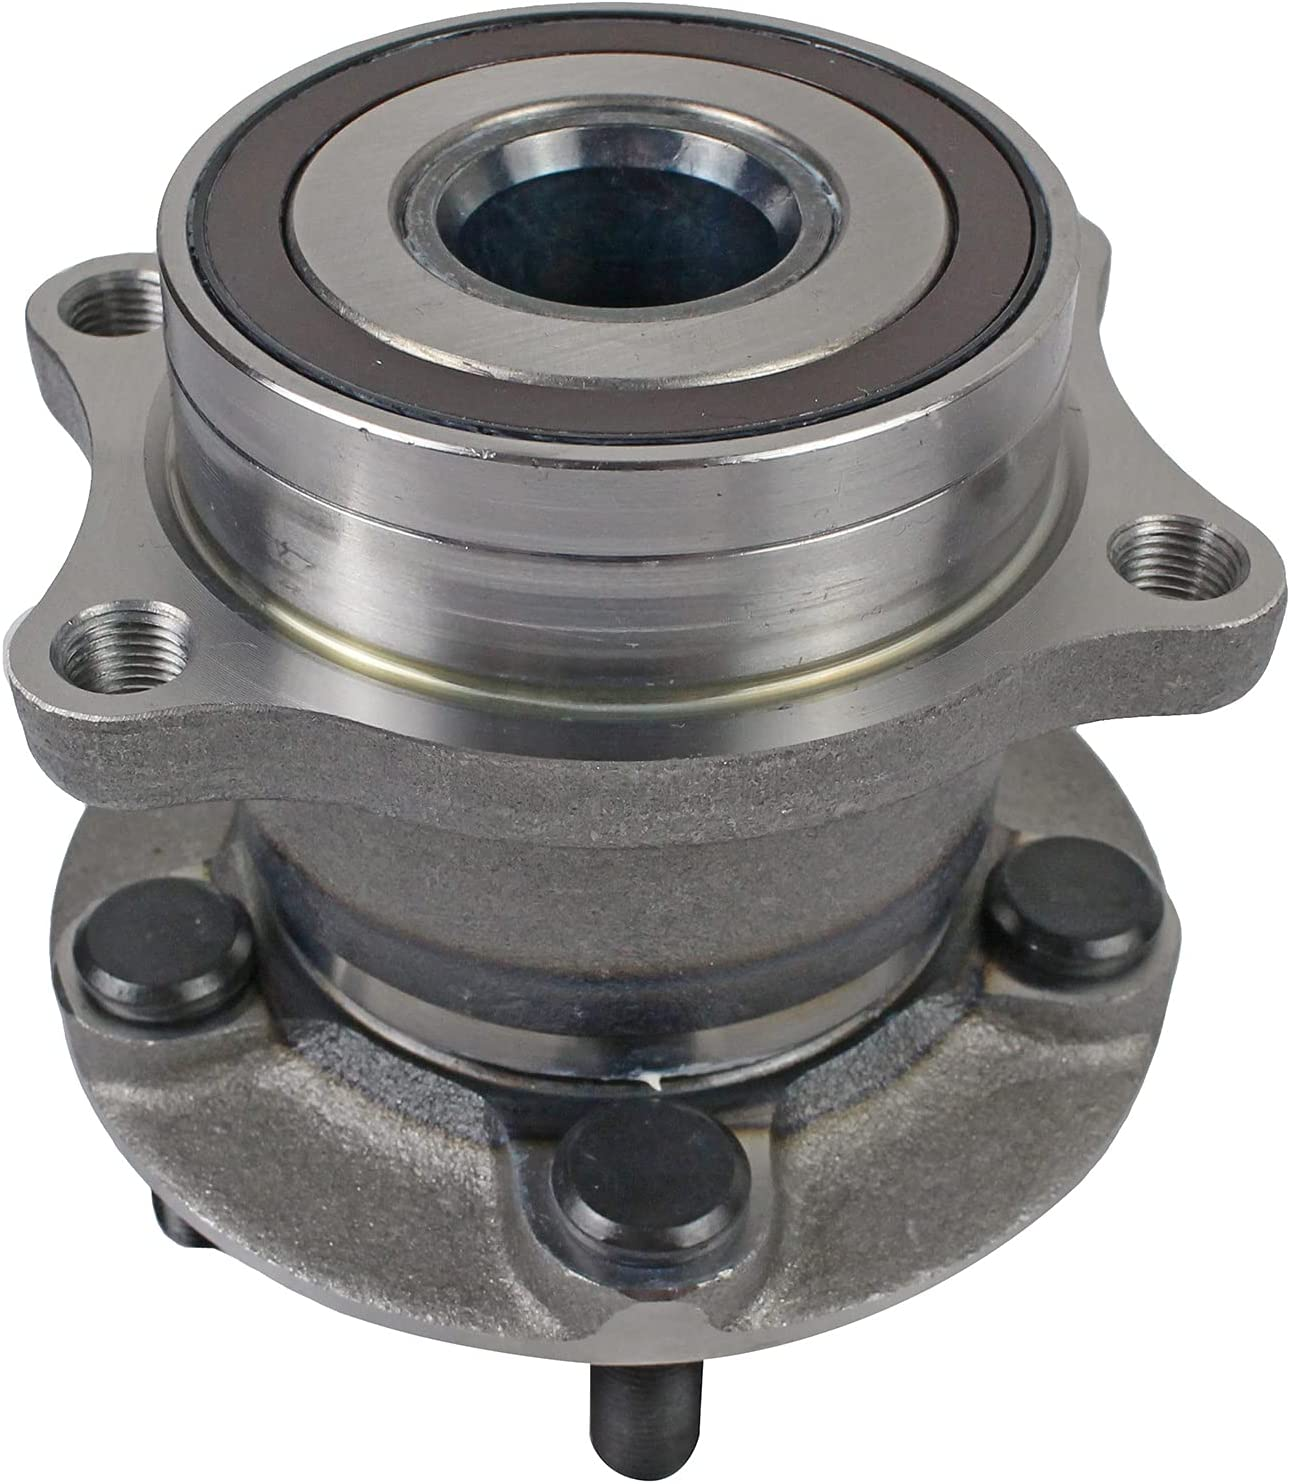 KUSATEC 512401 Rear Wheel Bearing Compatible Hub and Assembly wi Ranking New York Mall TOP1